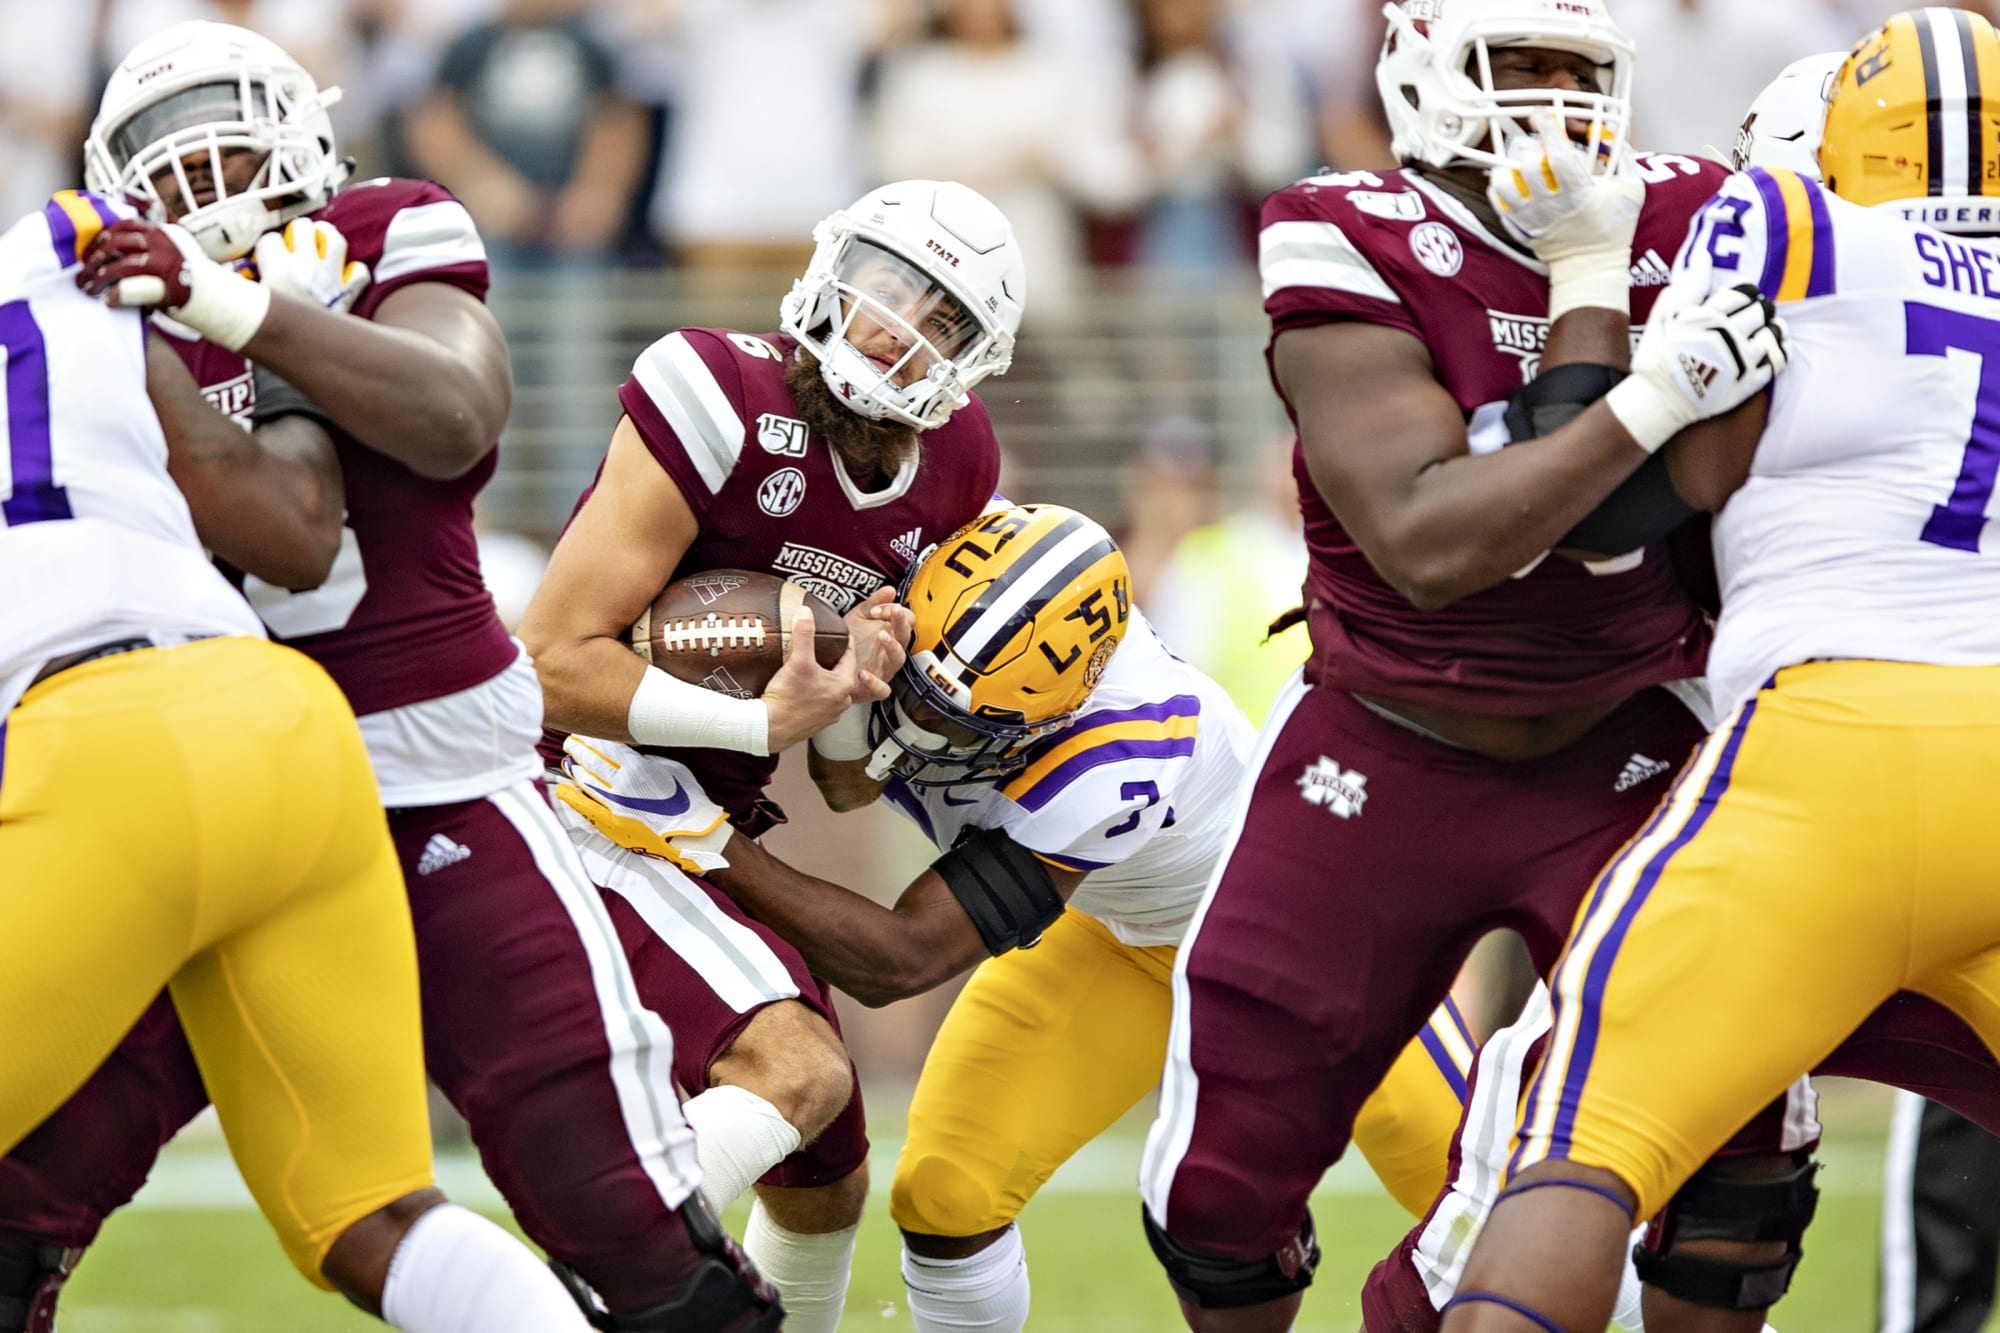 2021 NFL Draft: Prospect Watch for Miss. State vs. LSU